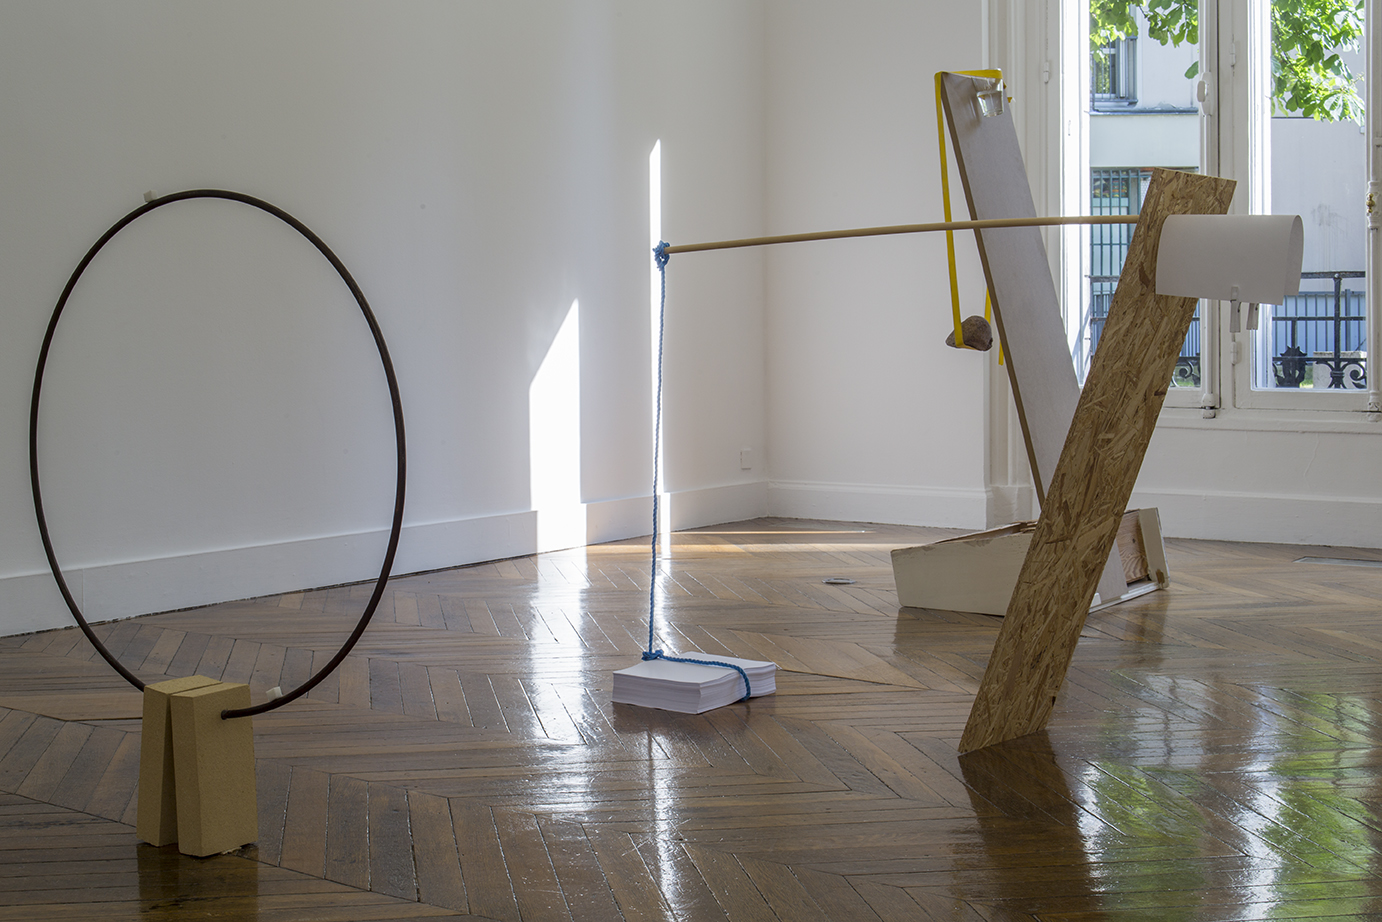 Only the Lonely, an exhibition Suoyrjö curated for La Galerie, Paris in 2015, focused on encounters. It addressed processes of making connections and disconnections. Photo: Cédrick Eymenier.